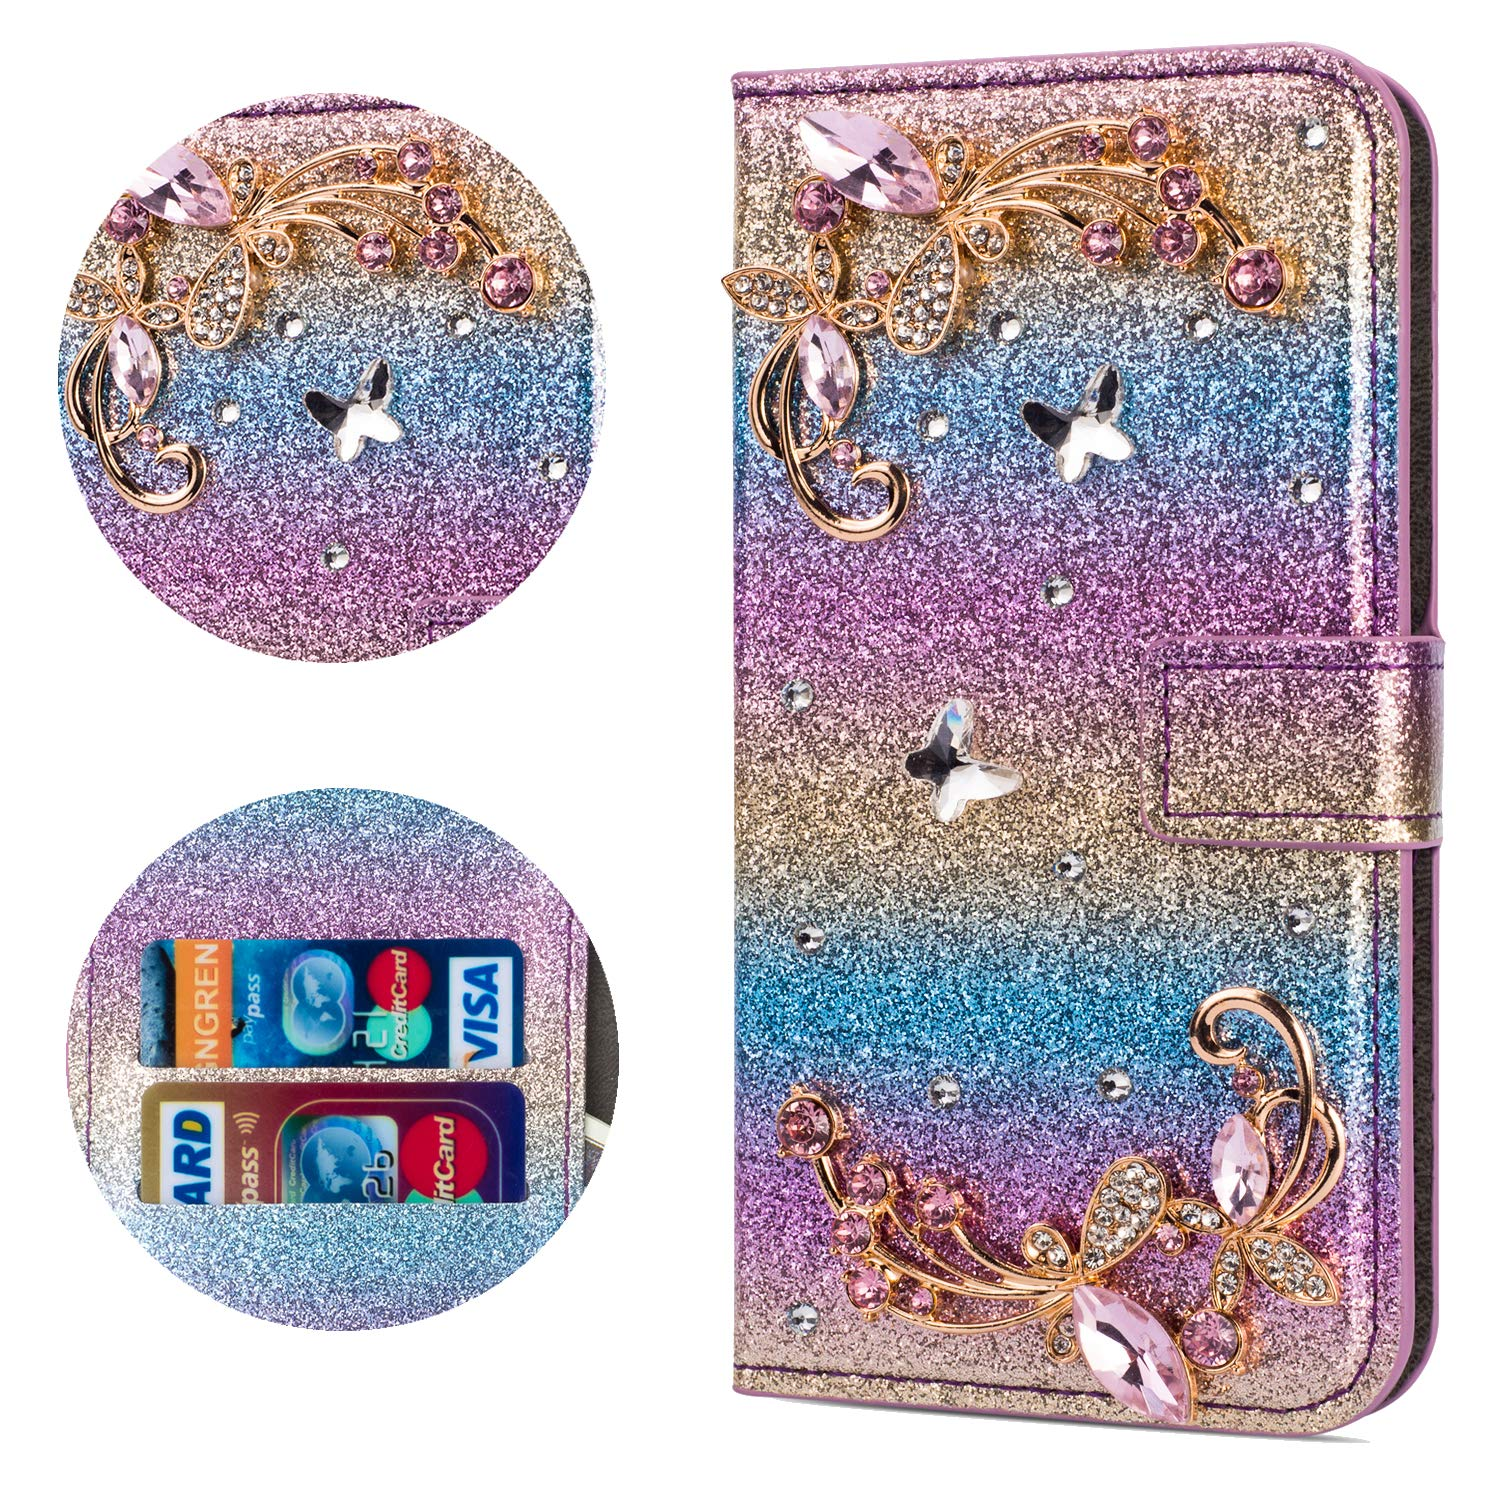 Stysen Flip Case for Galaxy S7 Edge,Leather Cover with 3D Handmade Crystal Diamonds Butterfly Glitter Floral Wallet Magnetic Clasp for Samsung Galaxy S7 Edge by Stysen